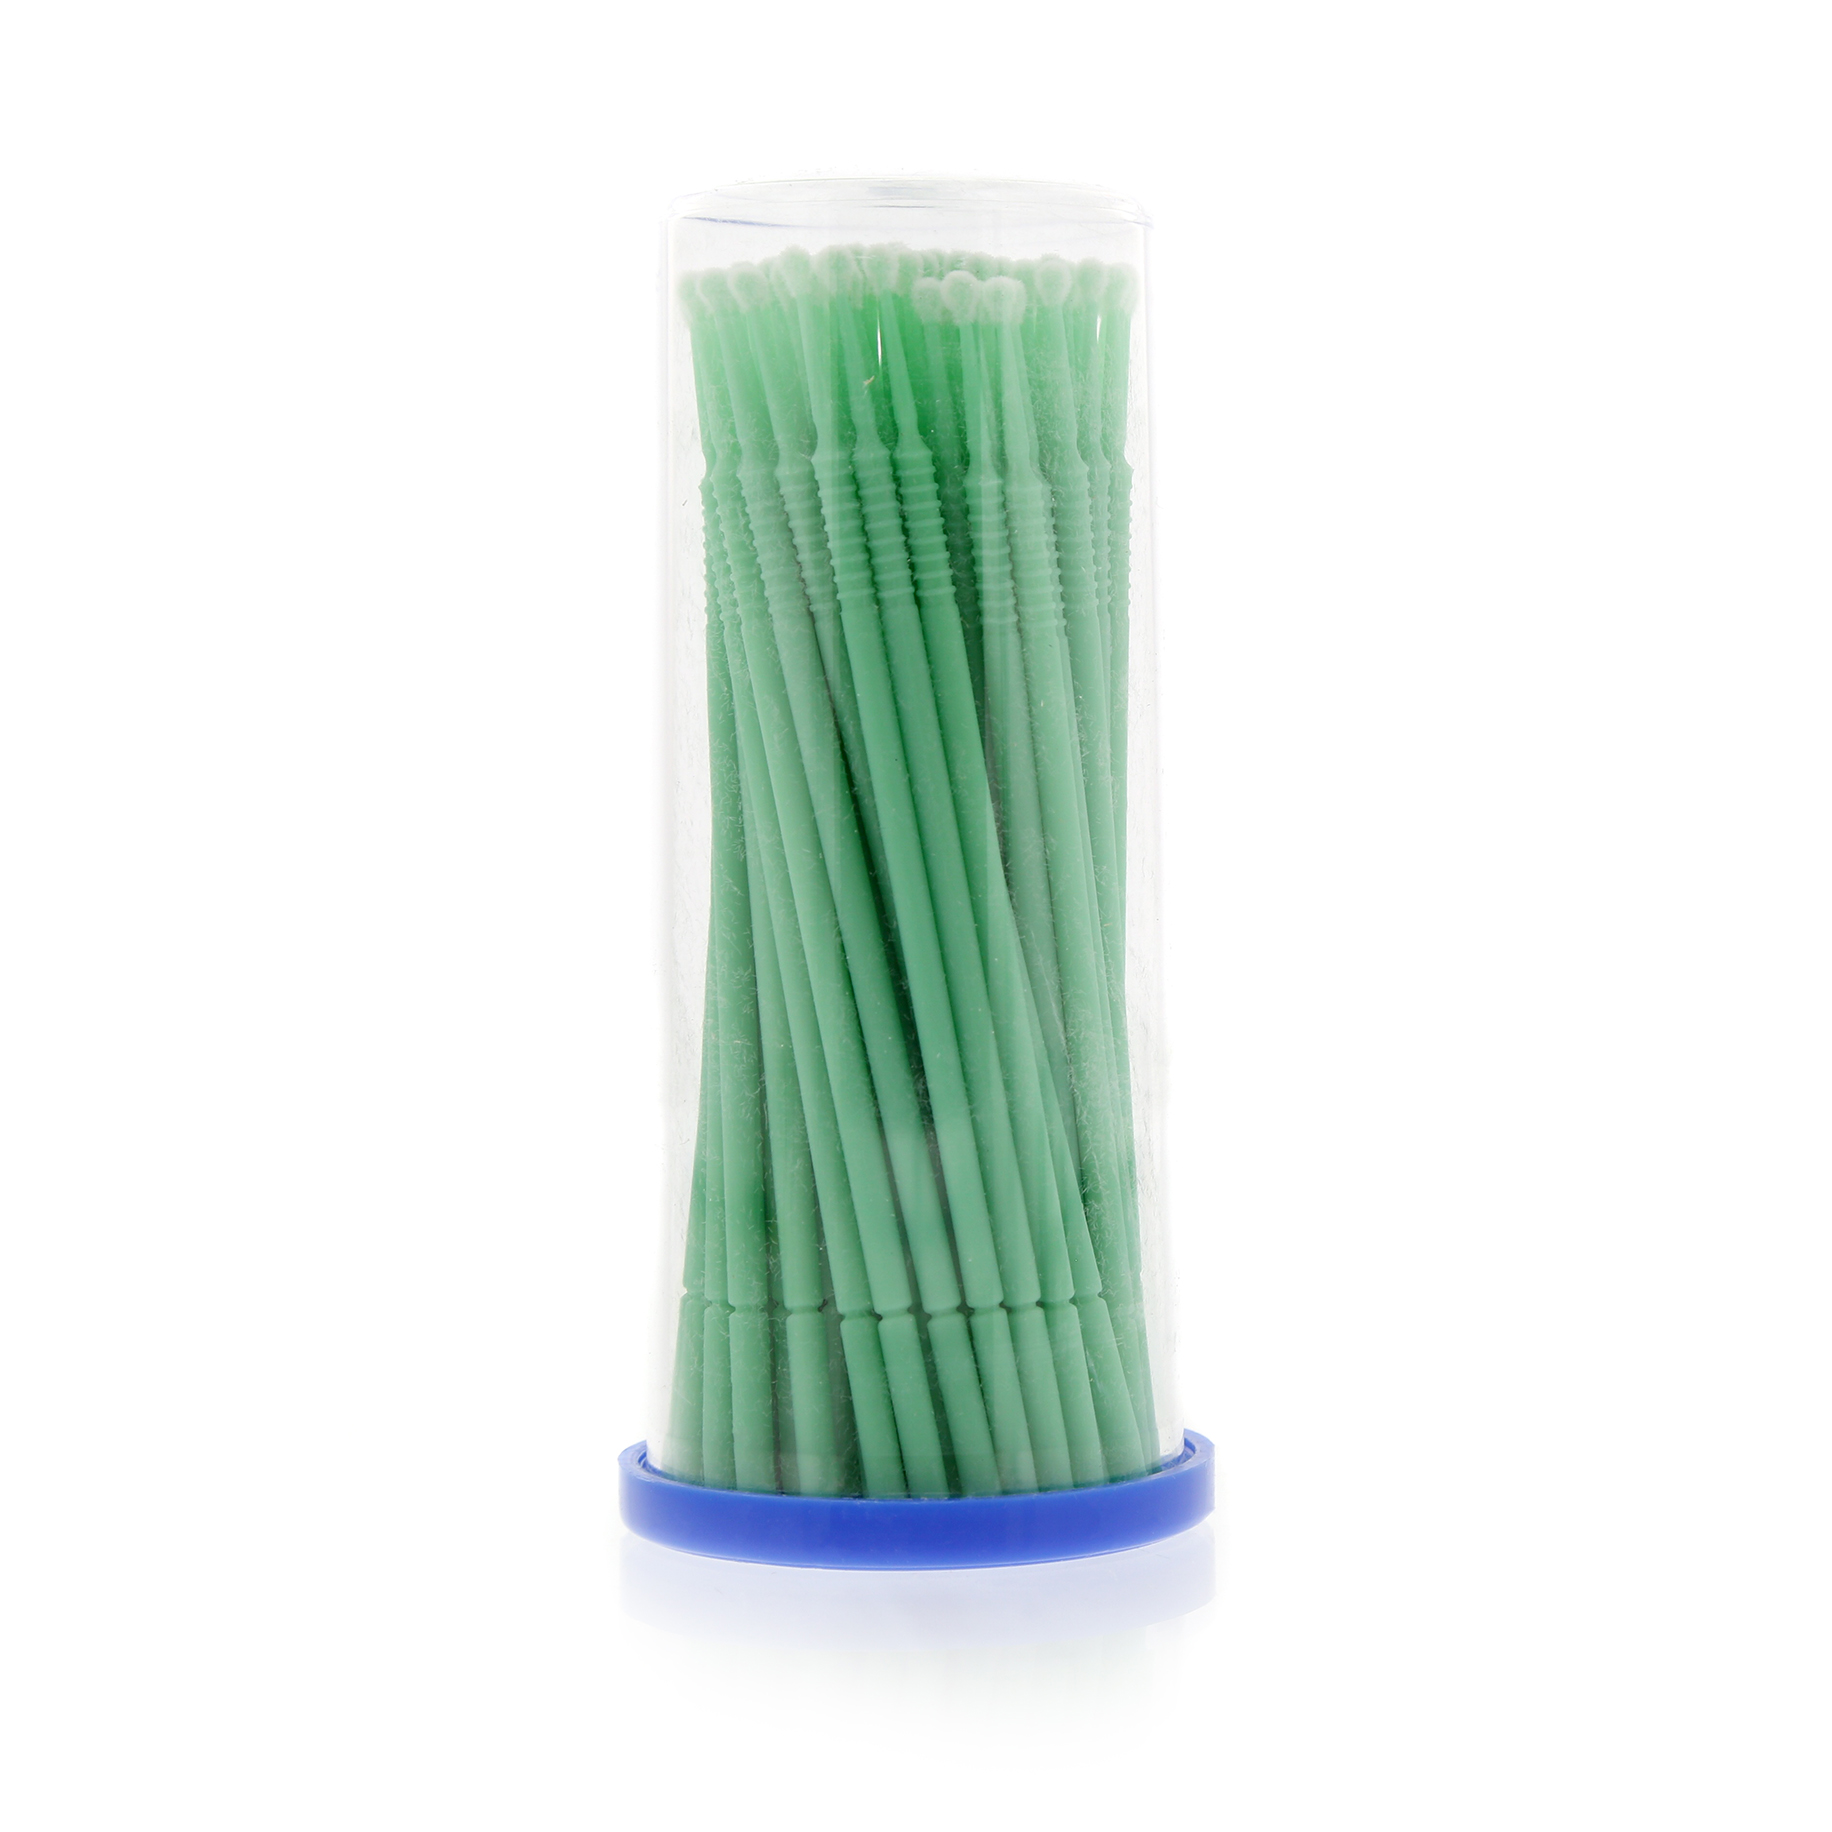 Micro Applicator Brush - Regular Green